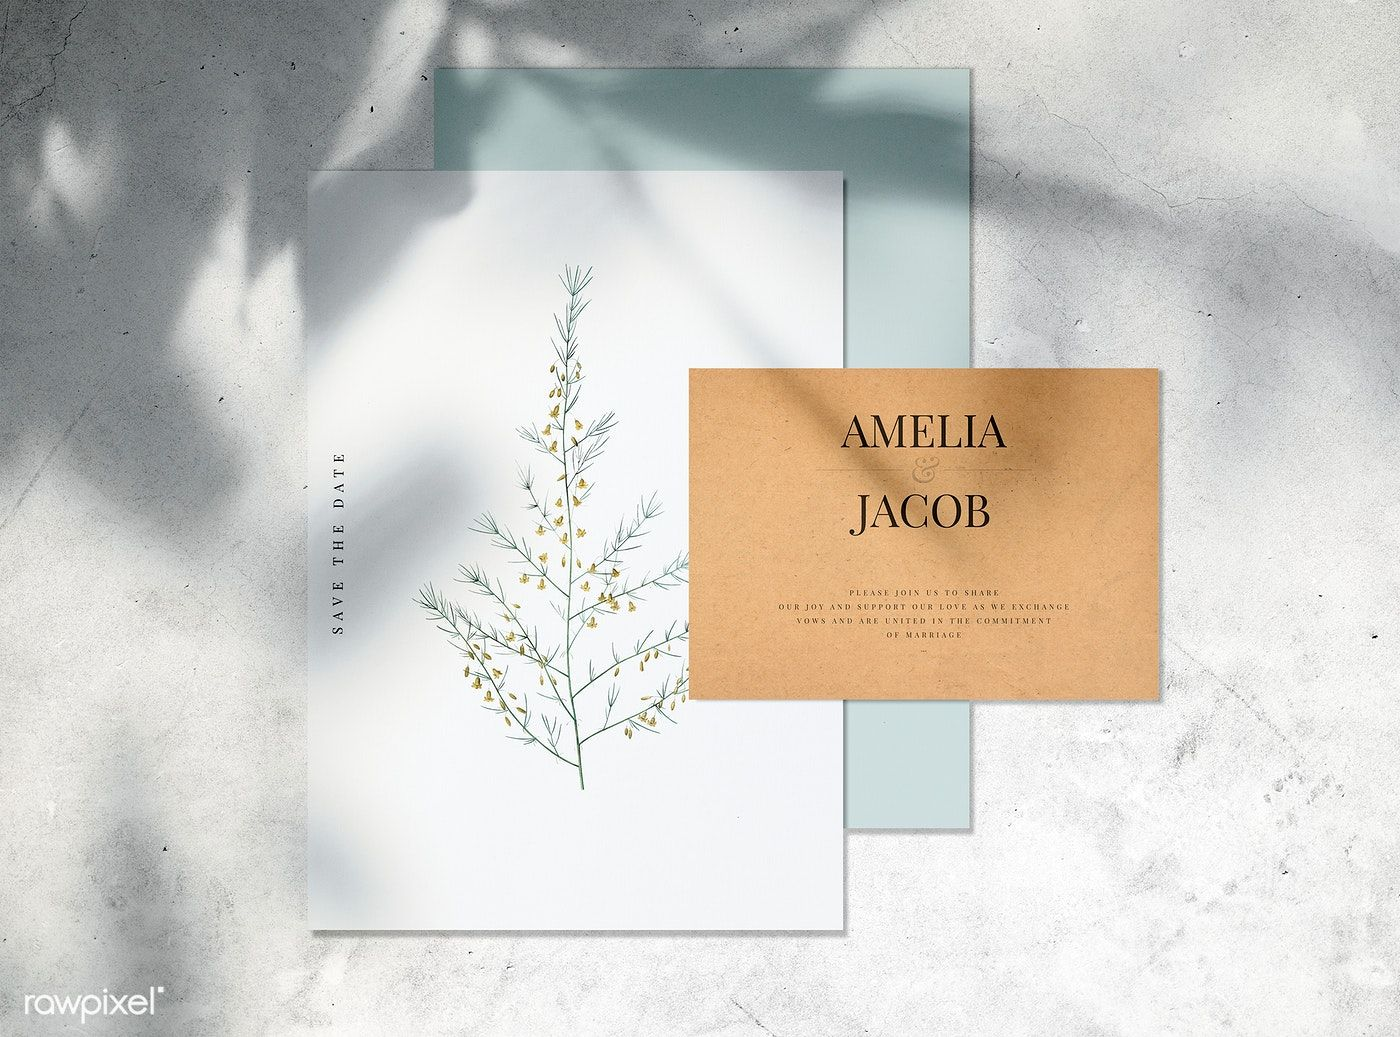 Save The Date Wedding Invitation Card Mockup Free Image By